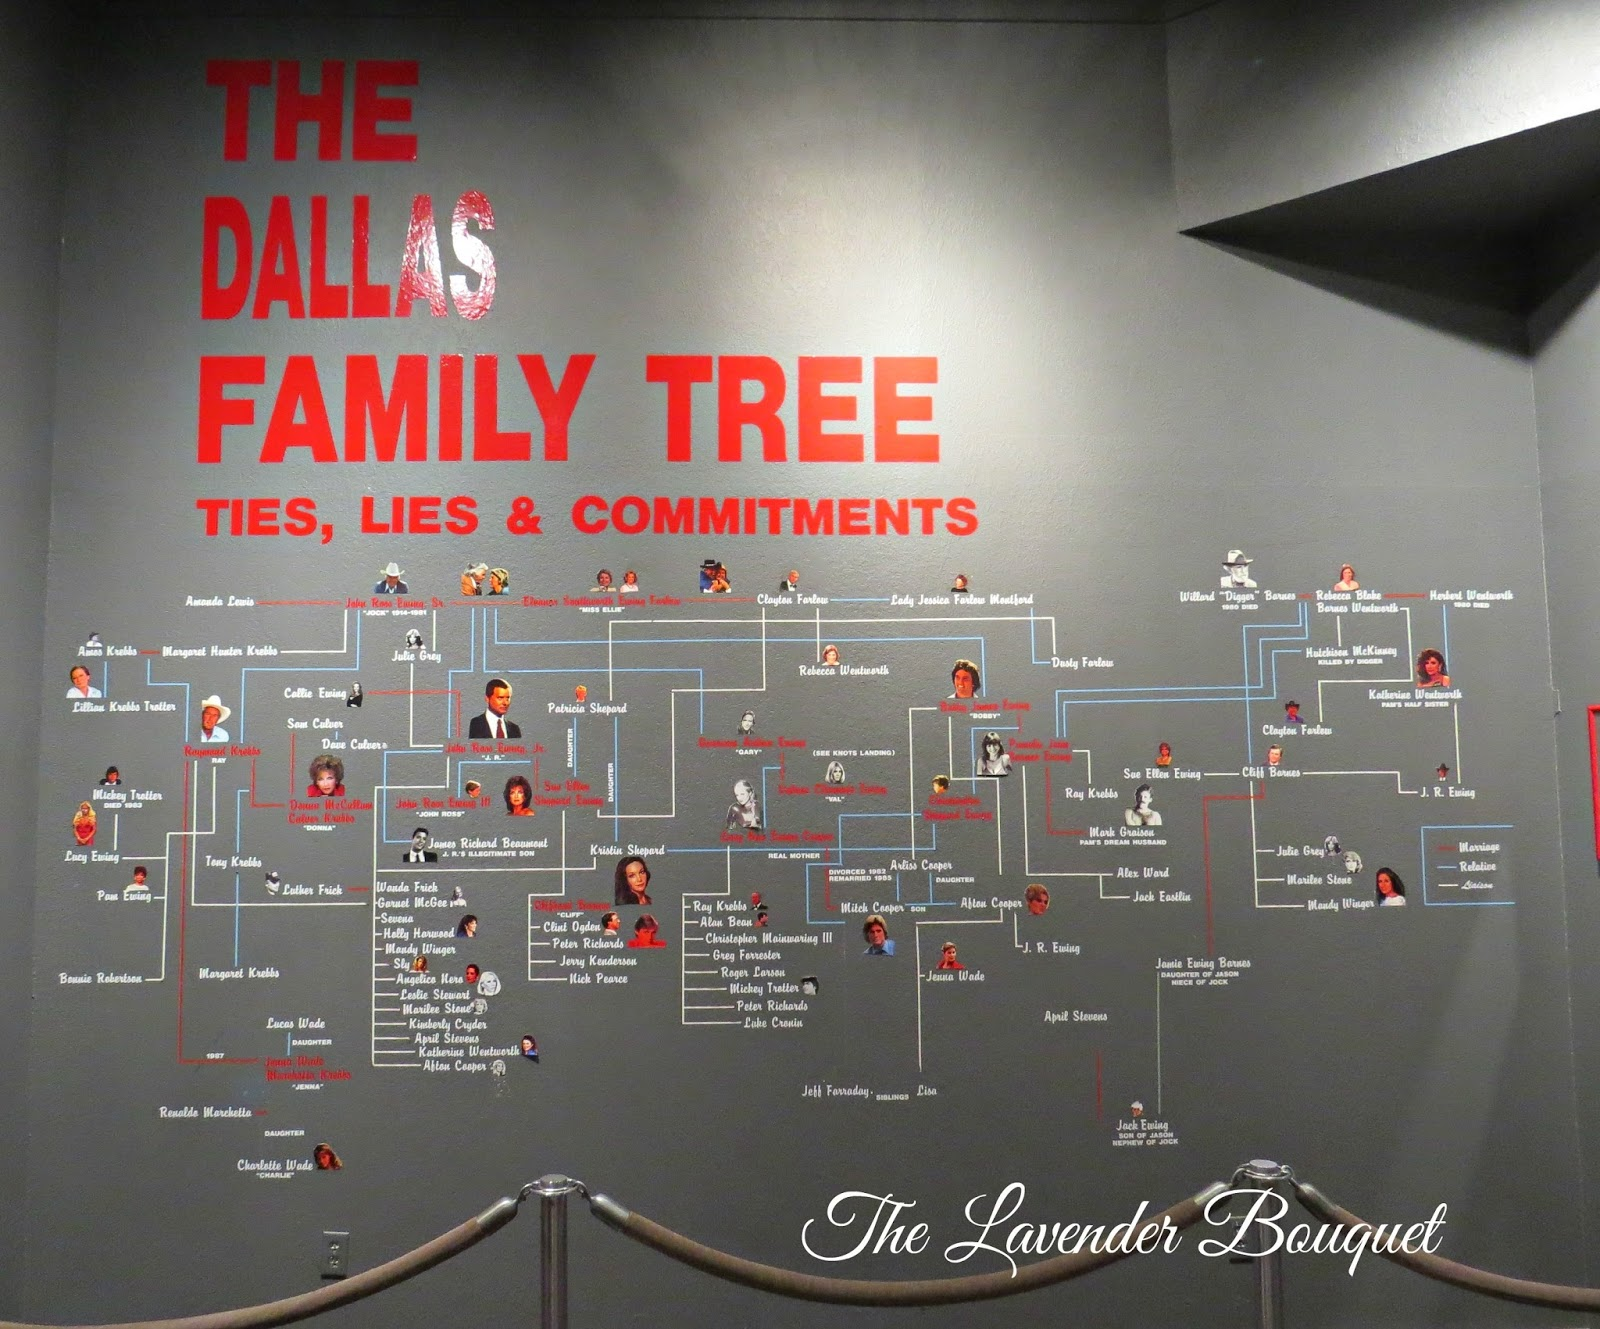 The lavender bouquet christmas tour at southfork ranch - Dallas tv show family tree ...